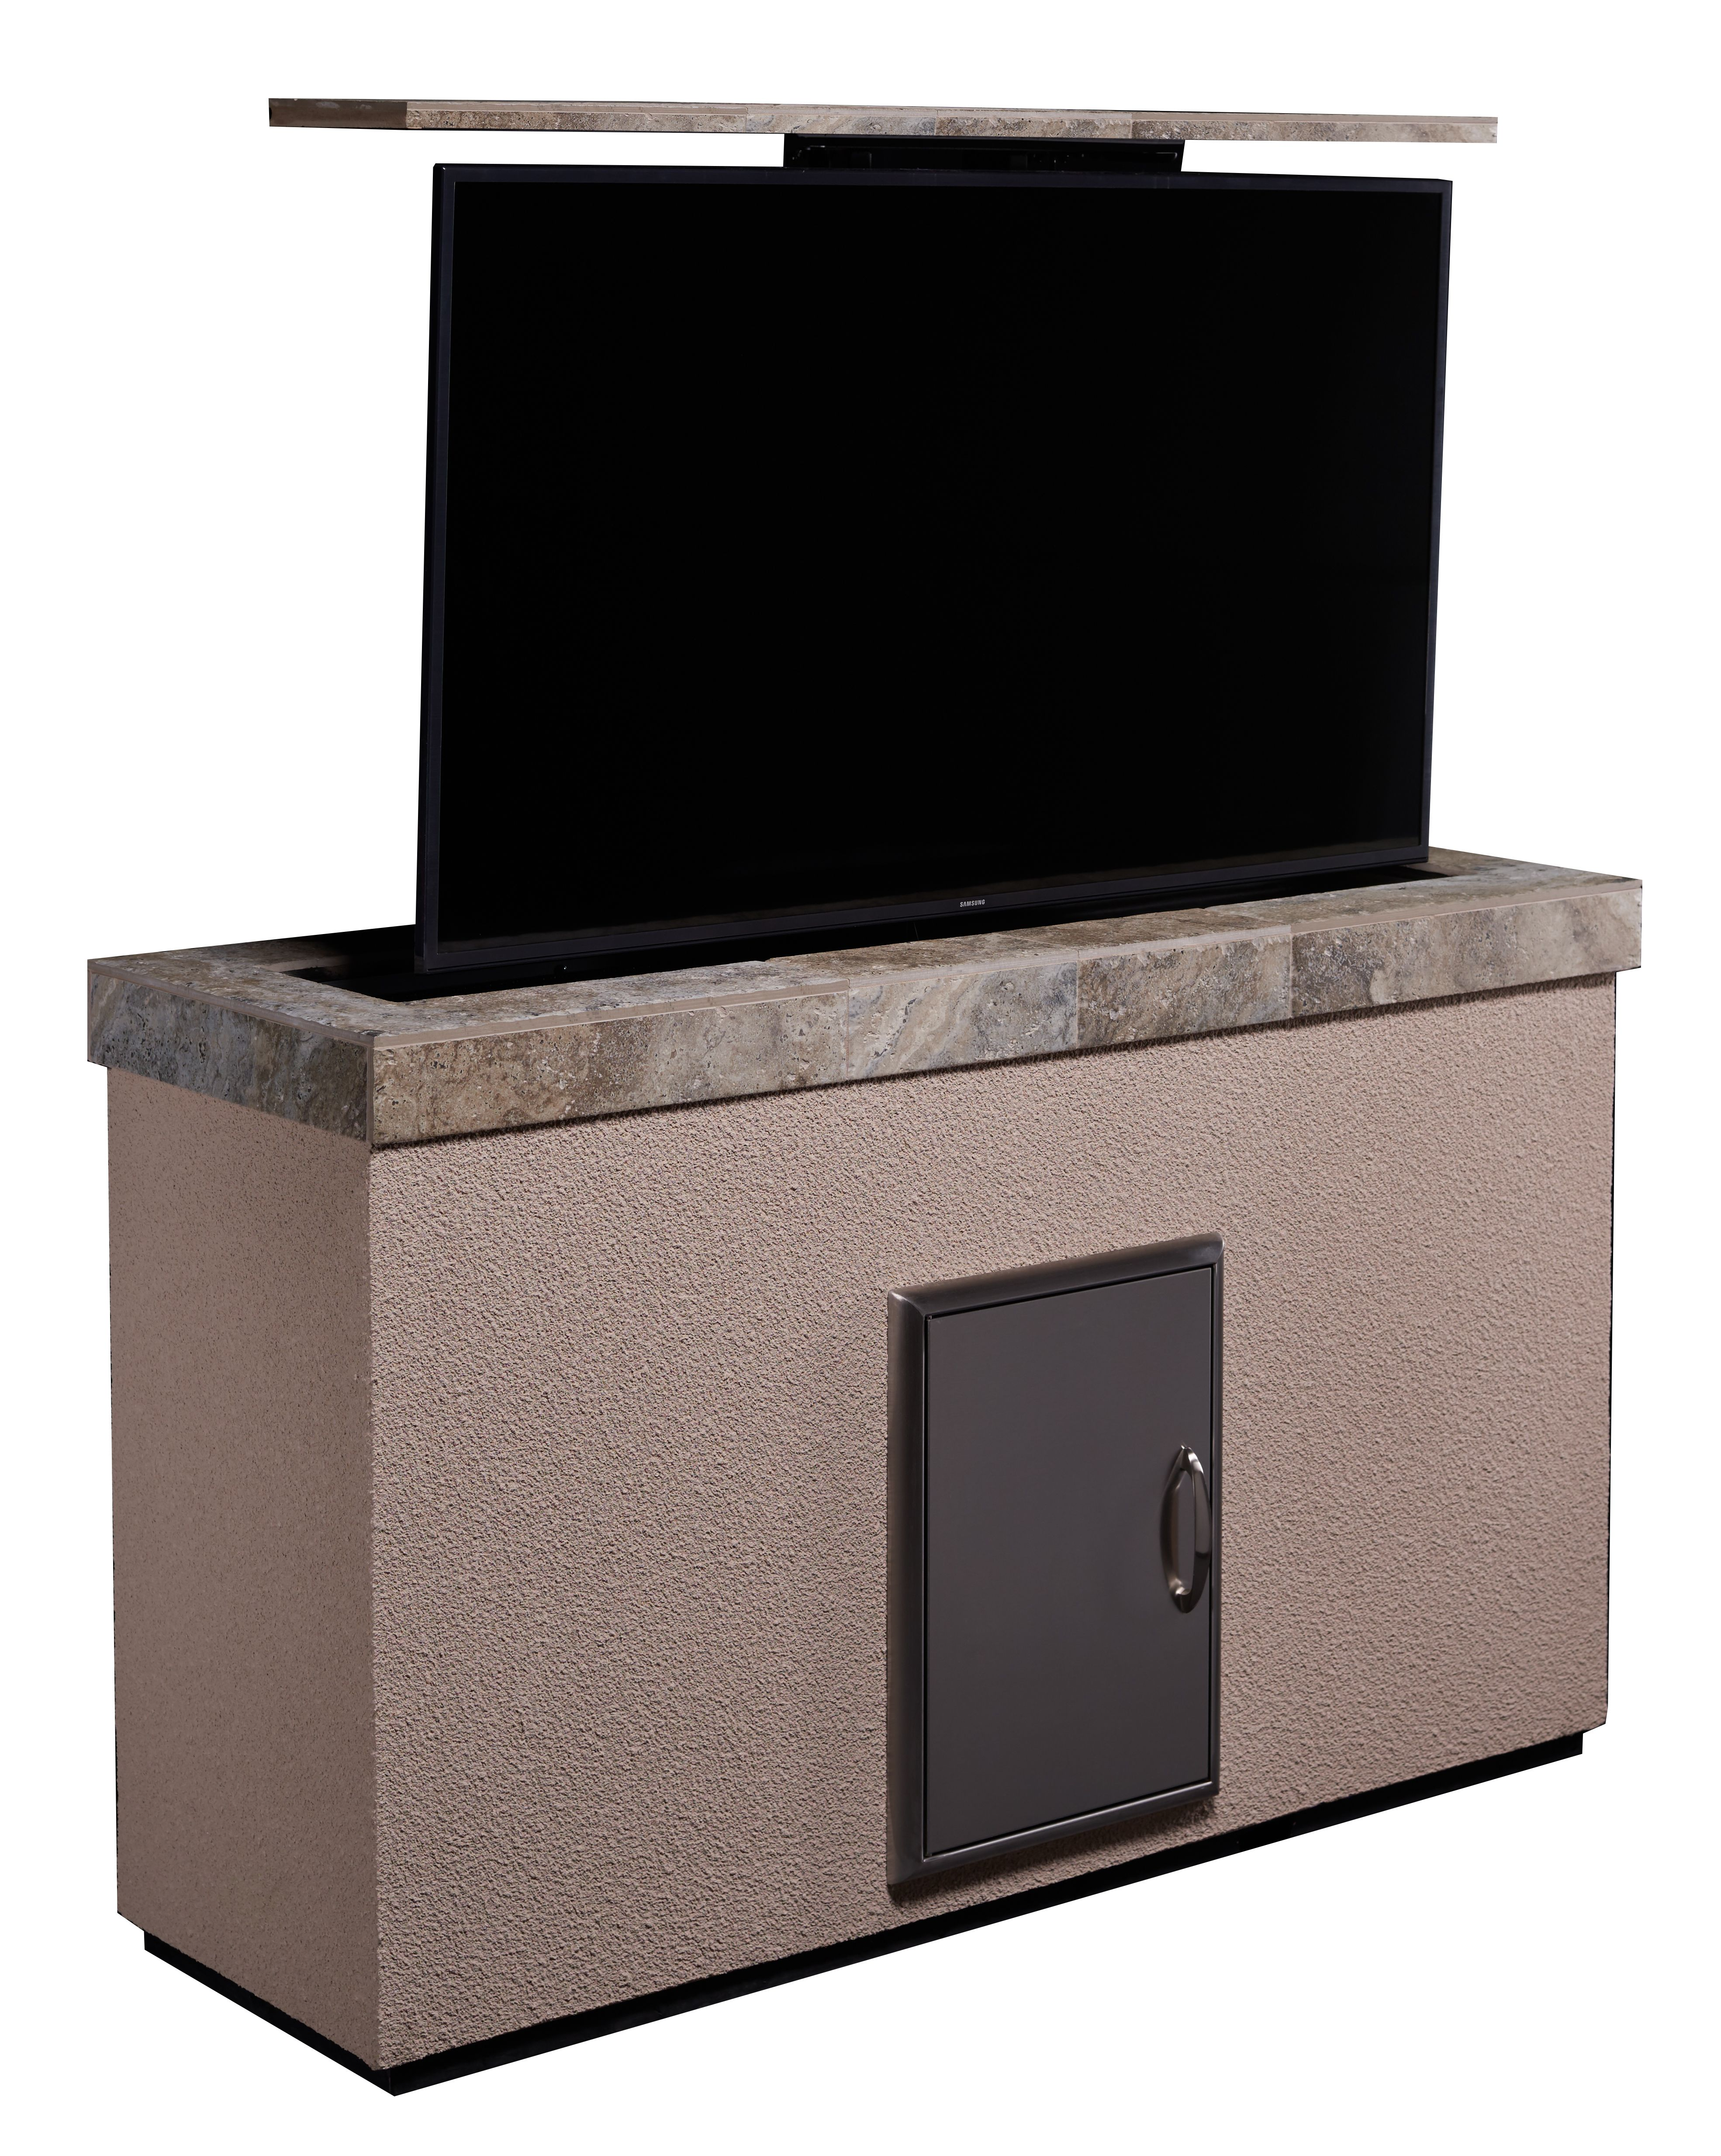 The Stucco TV lift furniture system which hides the TV has a